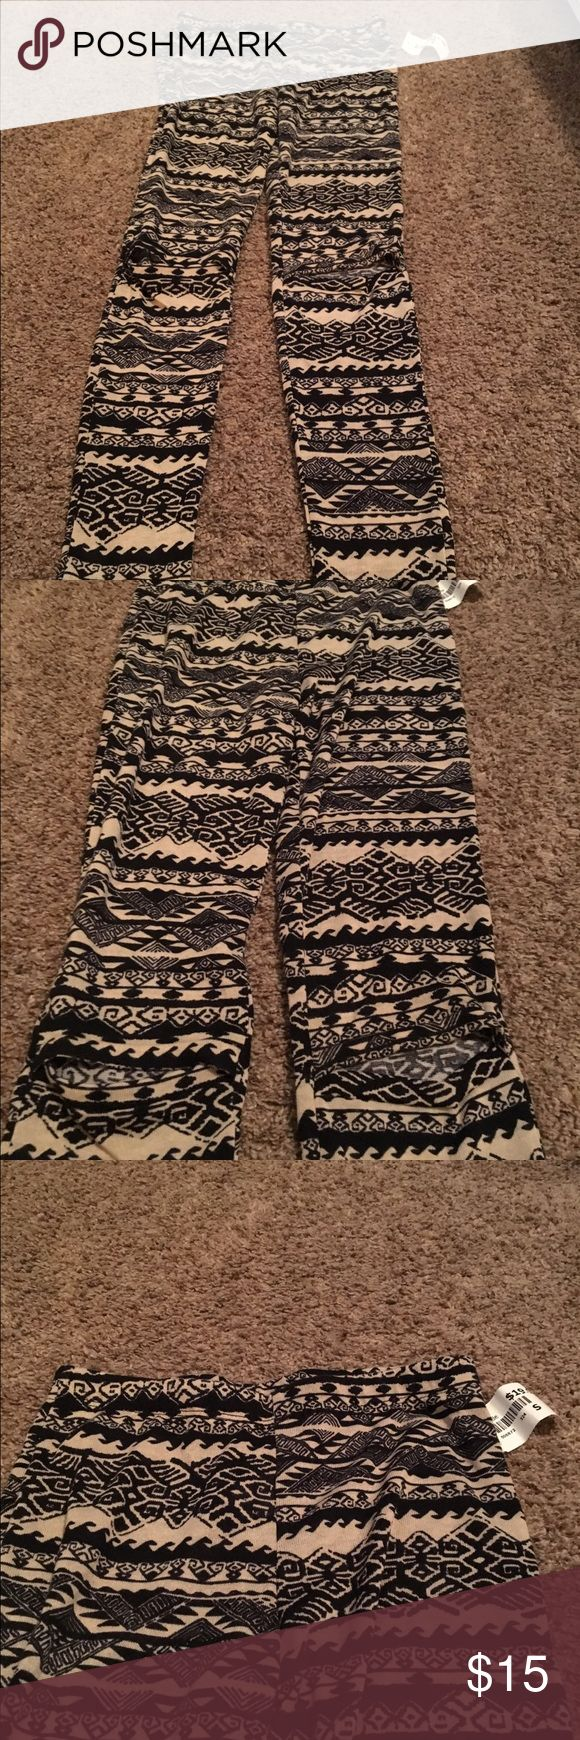 Nwt signatures tribal print cut out leggings NWT signatures black & white/ off white tribal print leggings with cut out opening at the knees for the ripped look. 100%polyester size small. Purchased at a boutique in NYC. Open to offers! signatures Pants Leggings